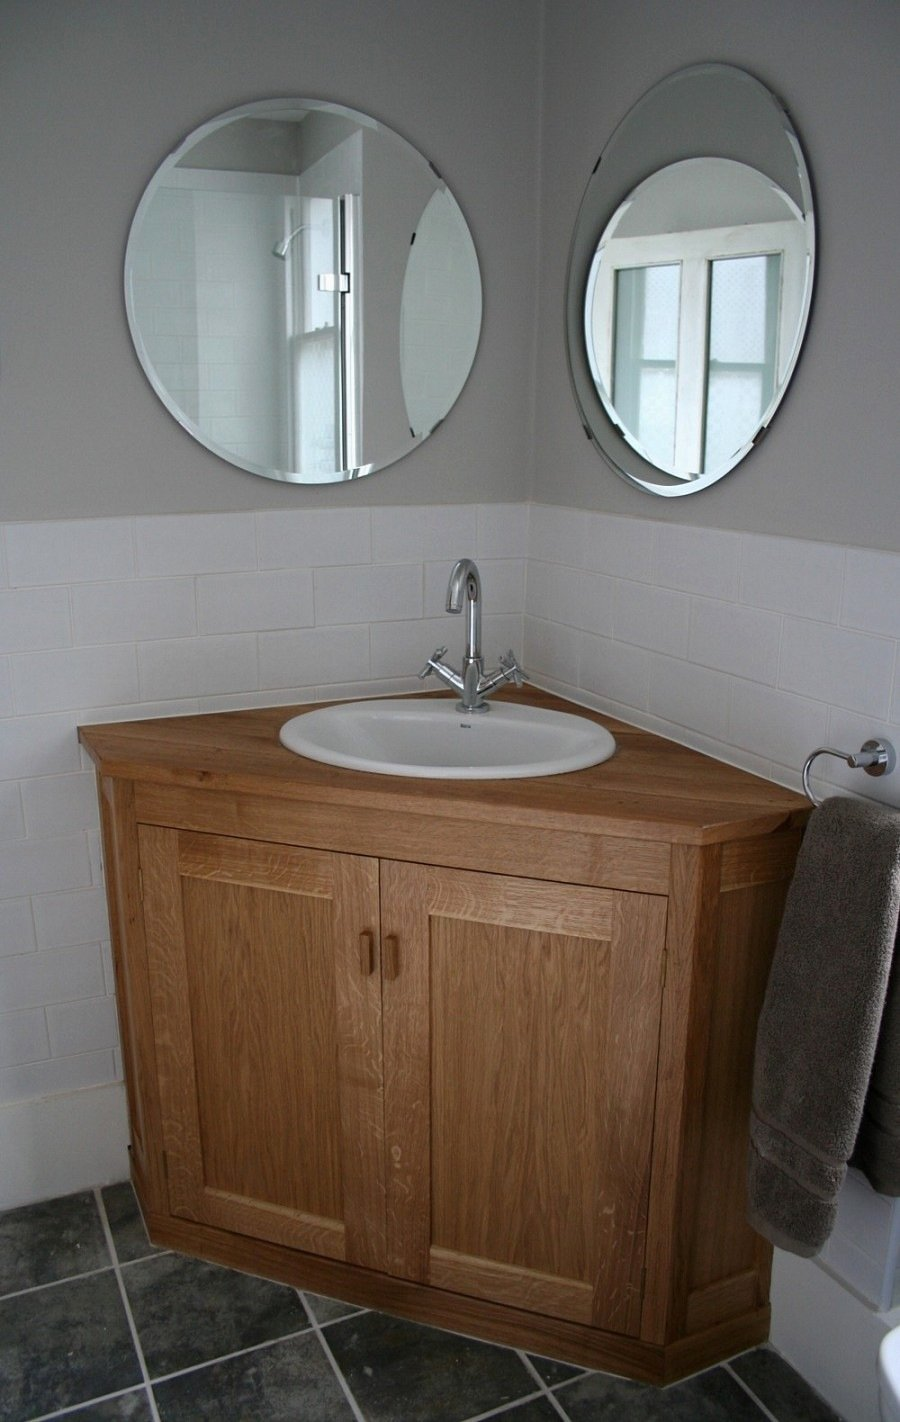 34 Lovely Corner Vanity Small Bathroom Jose Style Solid Wood Vanity Units For Bathrooms